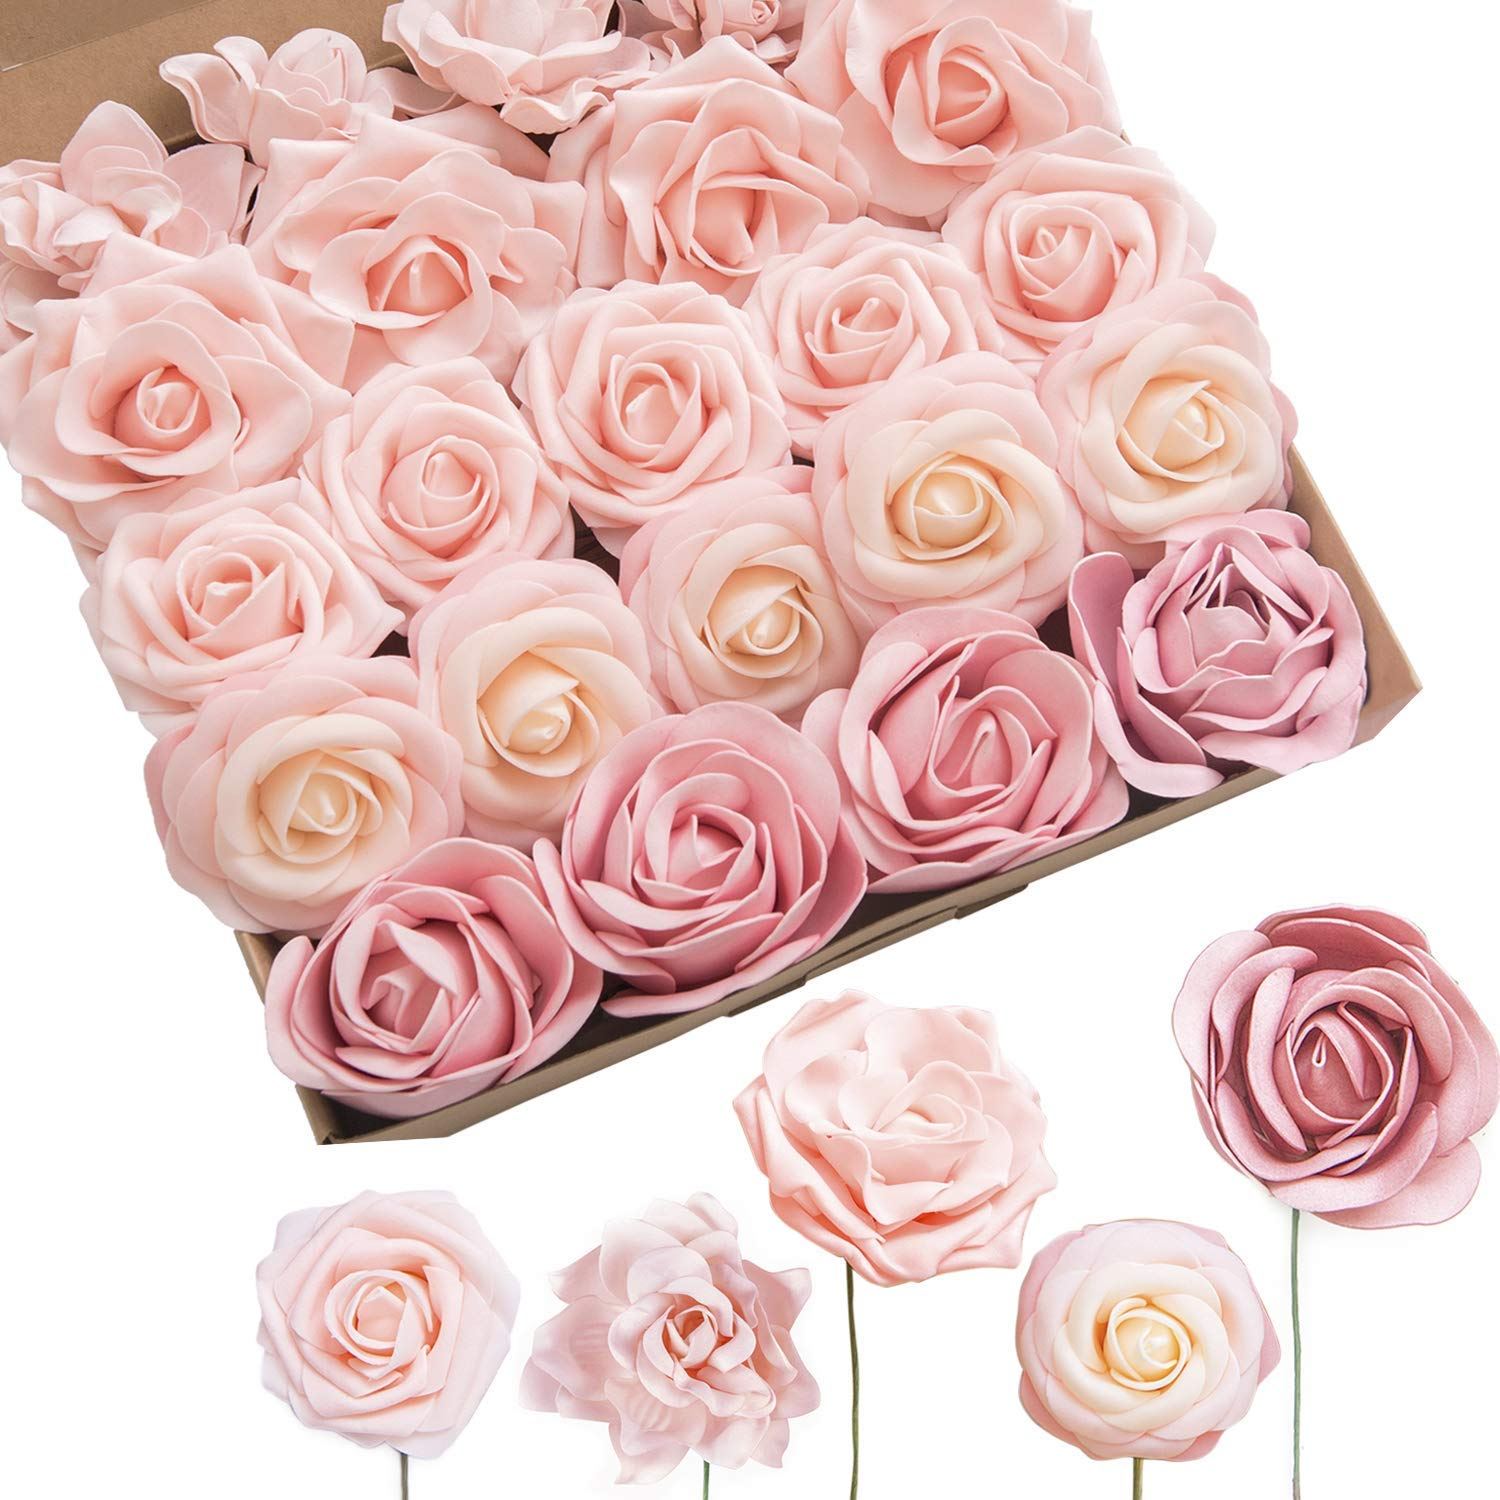 Lings Moment Artificial Flowers Combo For Diy Wedding Bouquets Centerpieces Arrangements Party Baby Shower Home Decorations Artificial Flowers Home Kitchen